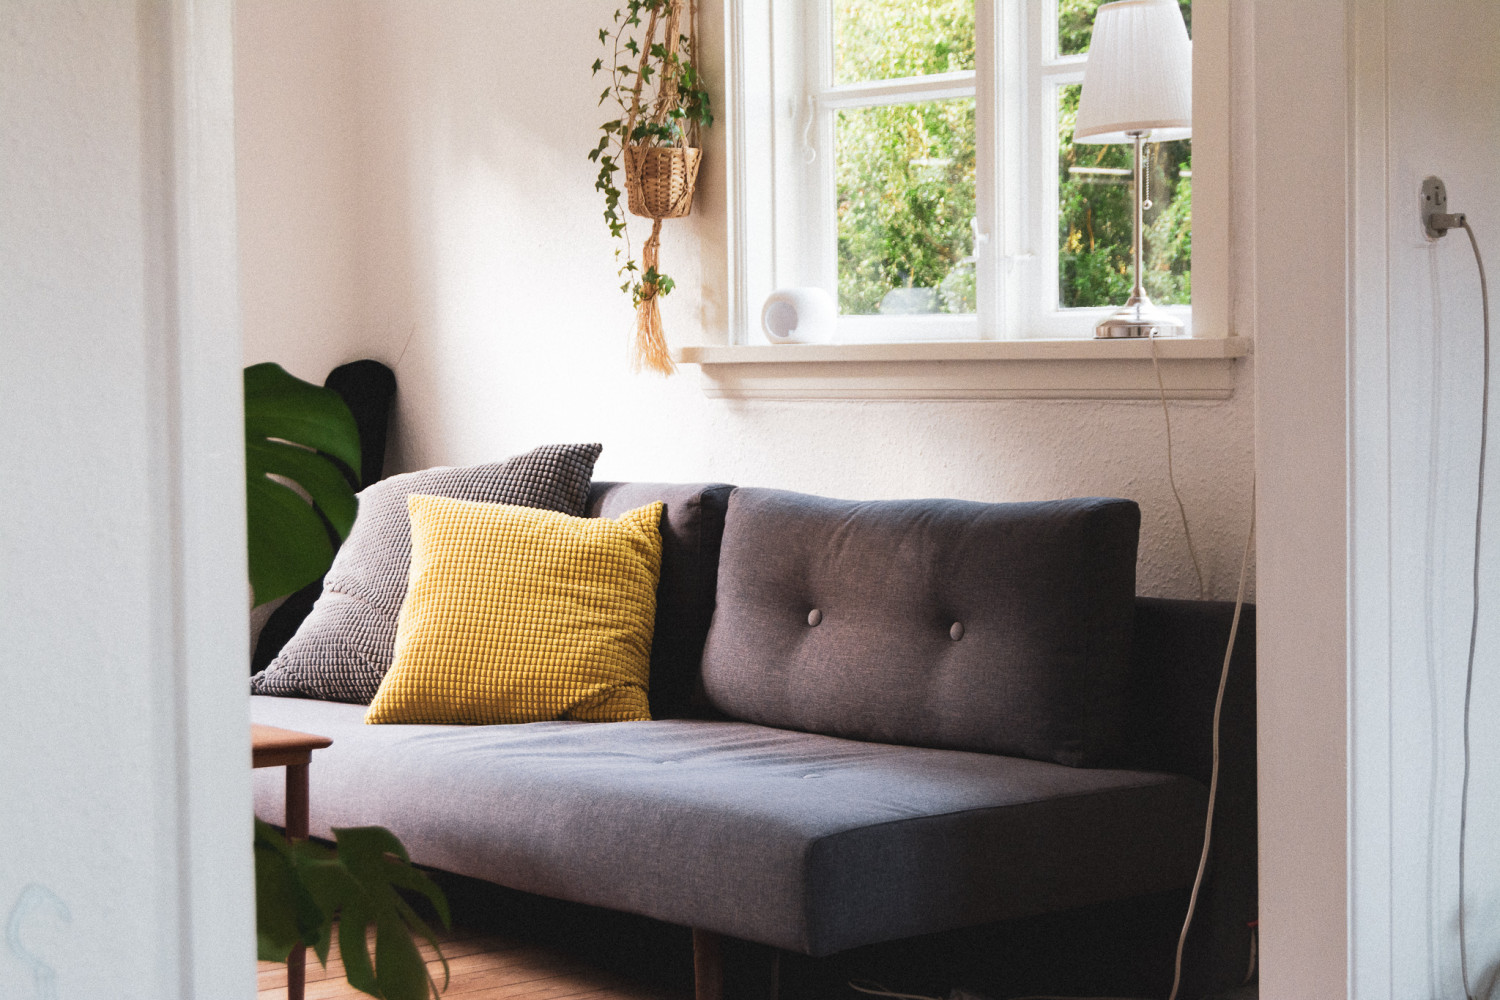 sofa, stue, hynder, plante, monstera, efui, couch, livingroom, pillows, plant, stories by holst